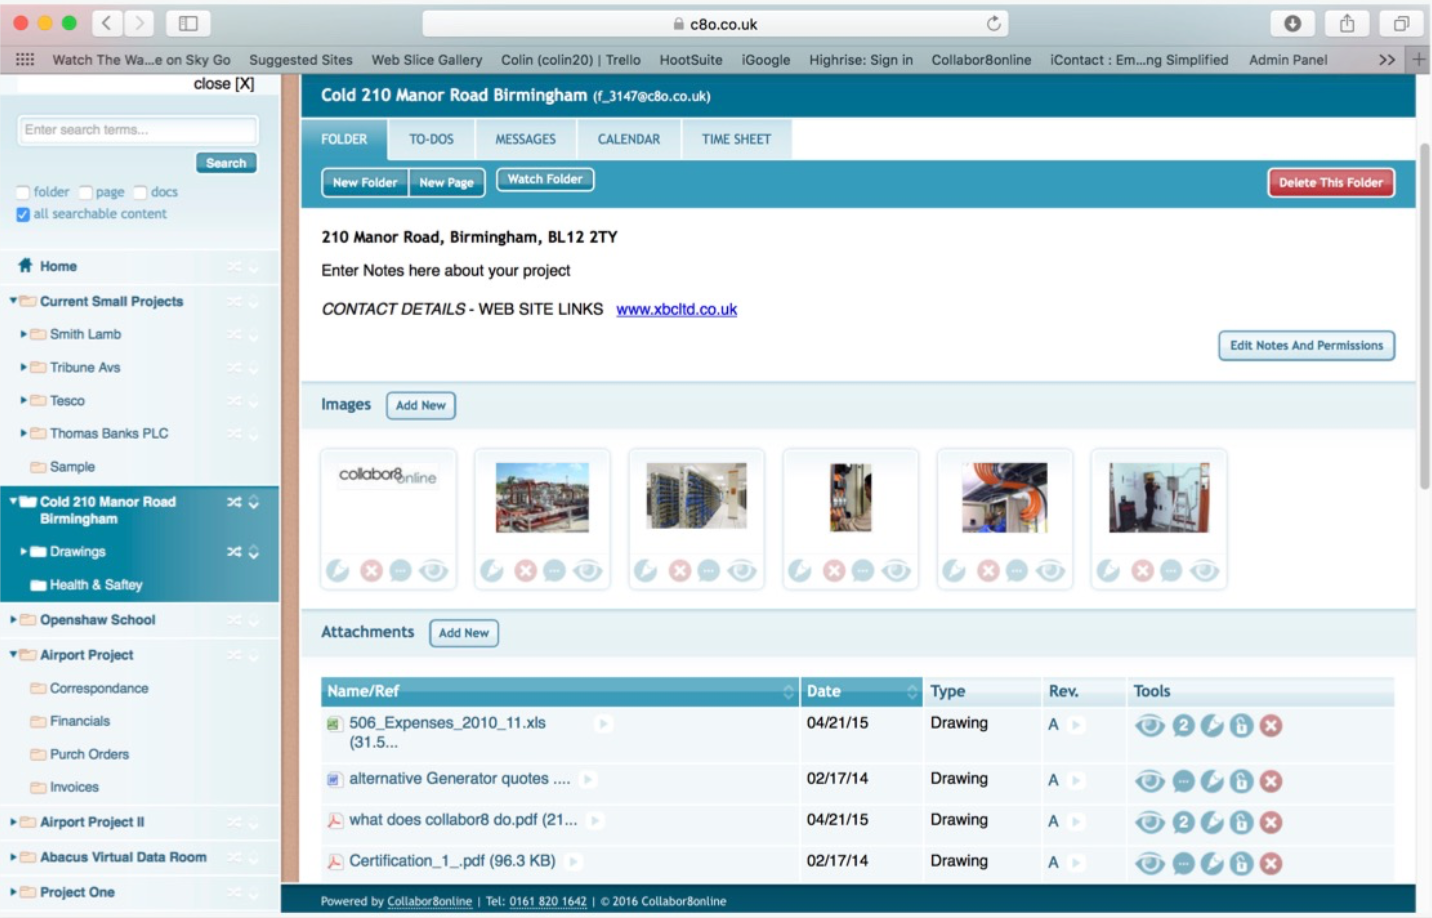 Collabor8online Software - Image files